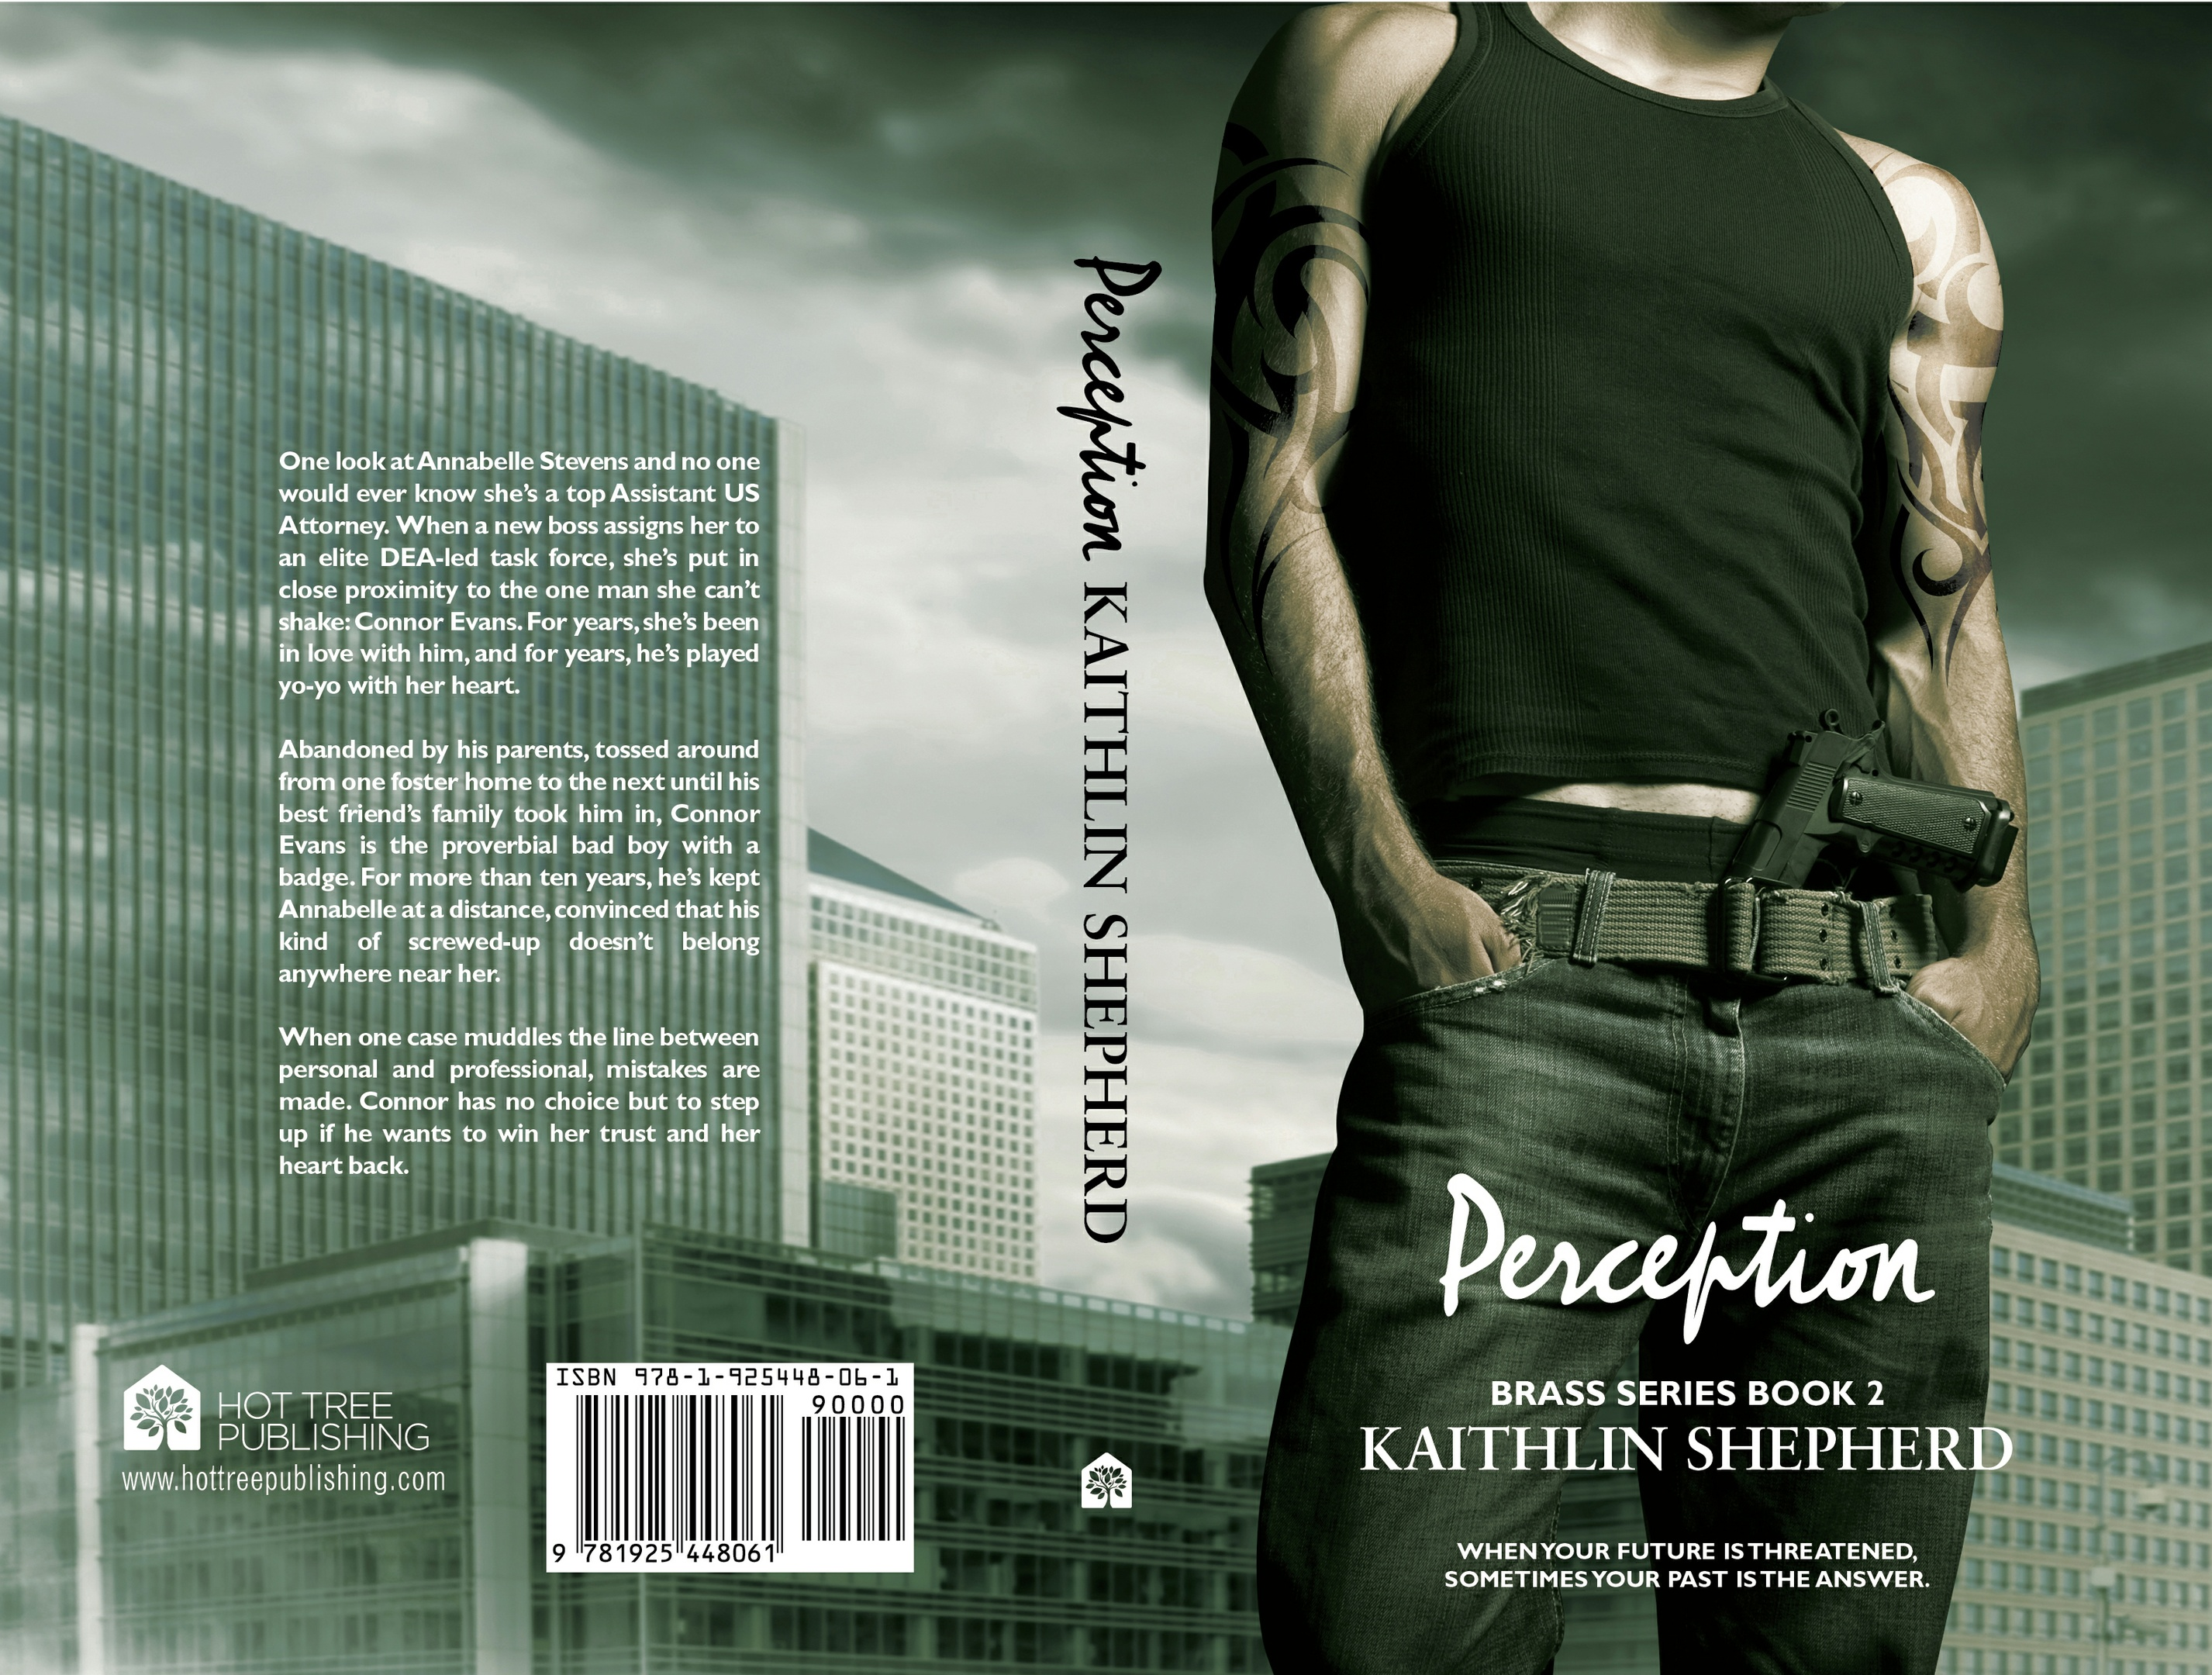 MOBI Perception by Kaithlin Shepherd